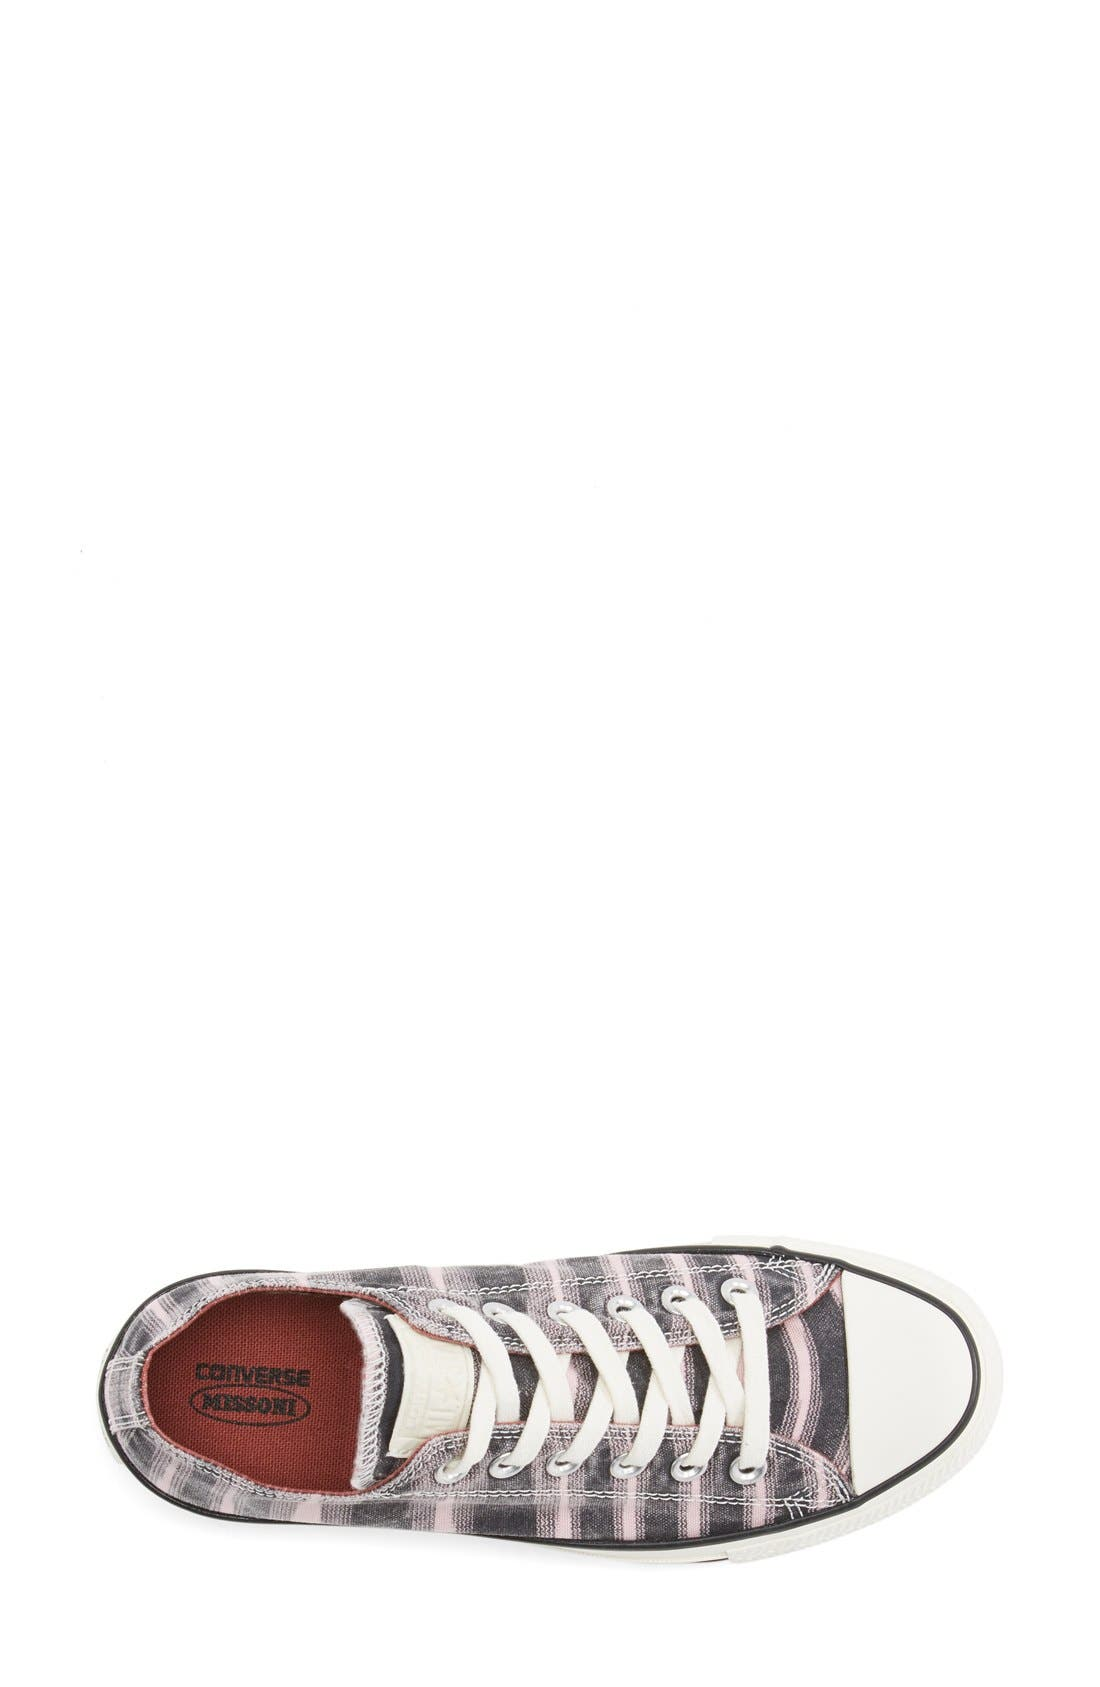 Alternate Image 3  - Converse x Missoni Chuck Taylor® All Star® 'Washed Space Dye' Sneaker (Women) (Online Only)